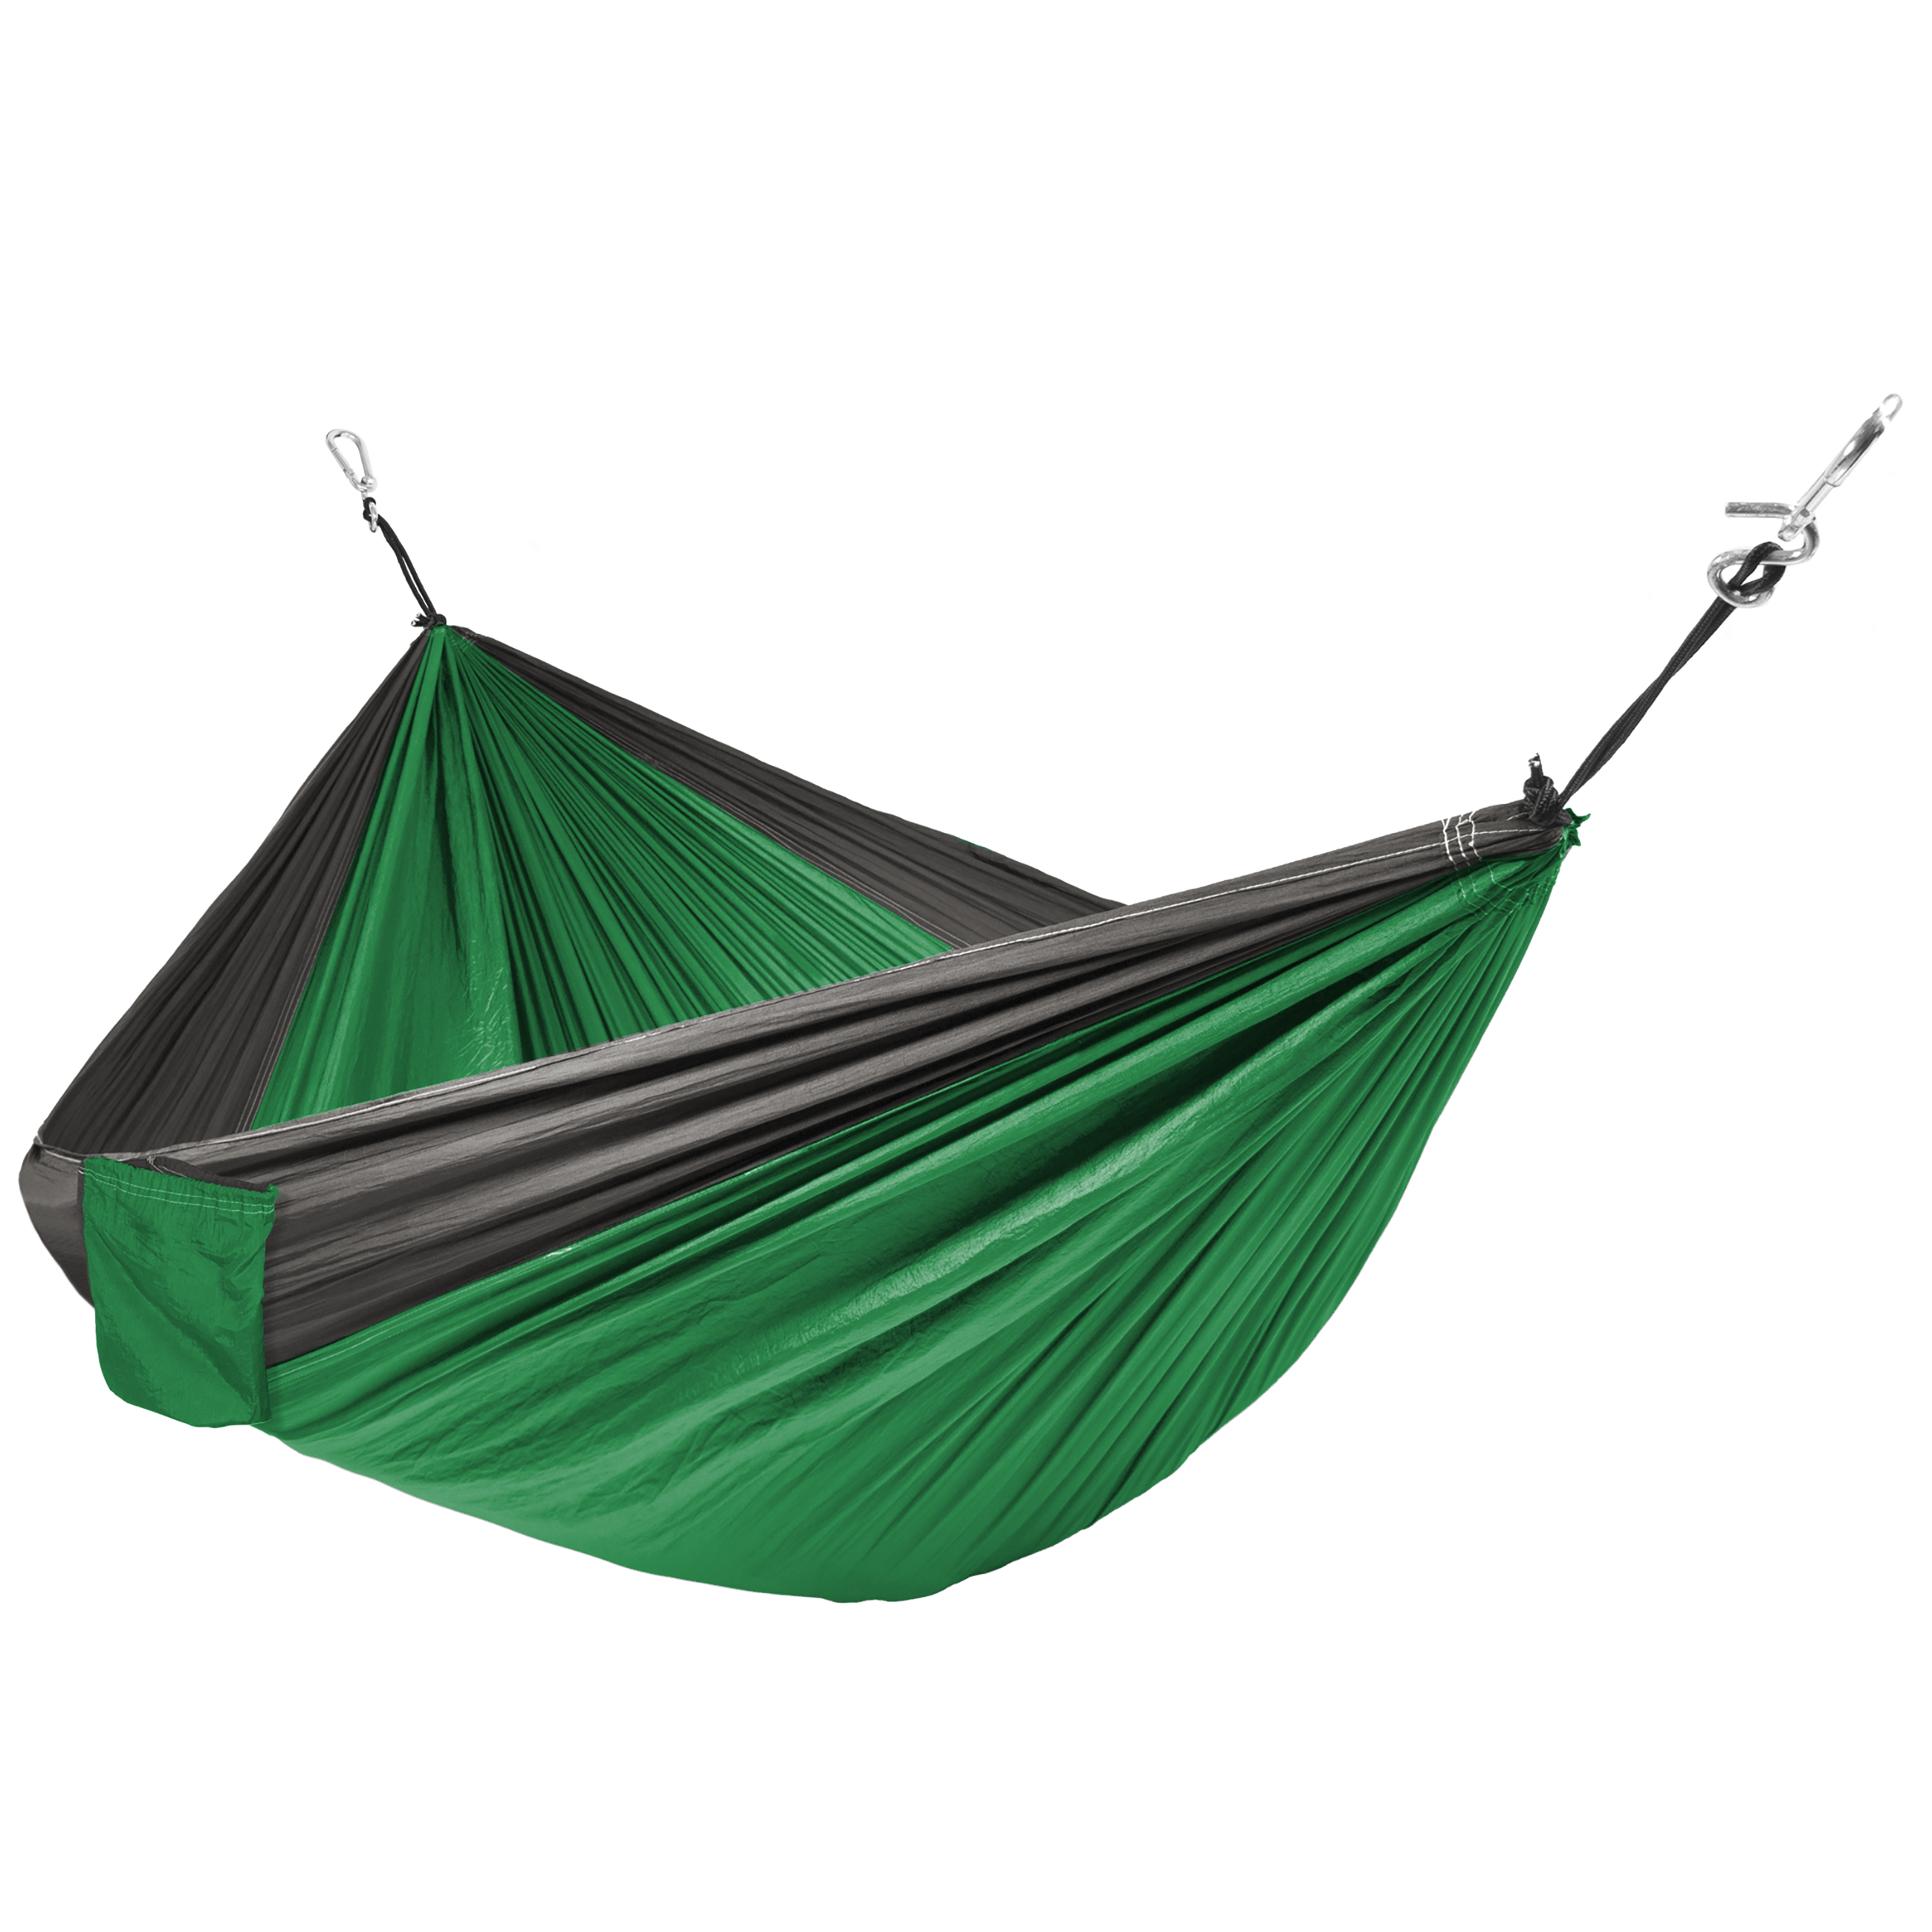 Best Choice Products Portable Nylon Parachute Hammock w/ Attached Stuff Sack- Green